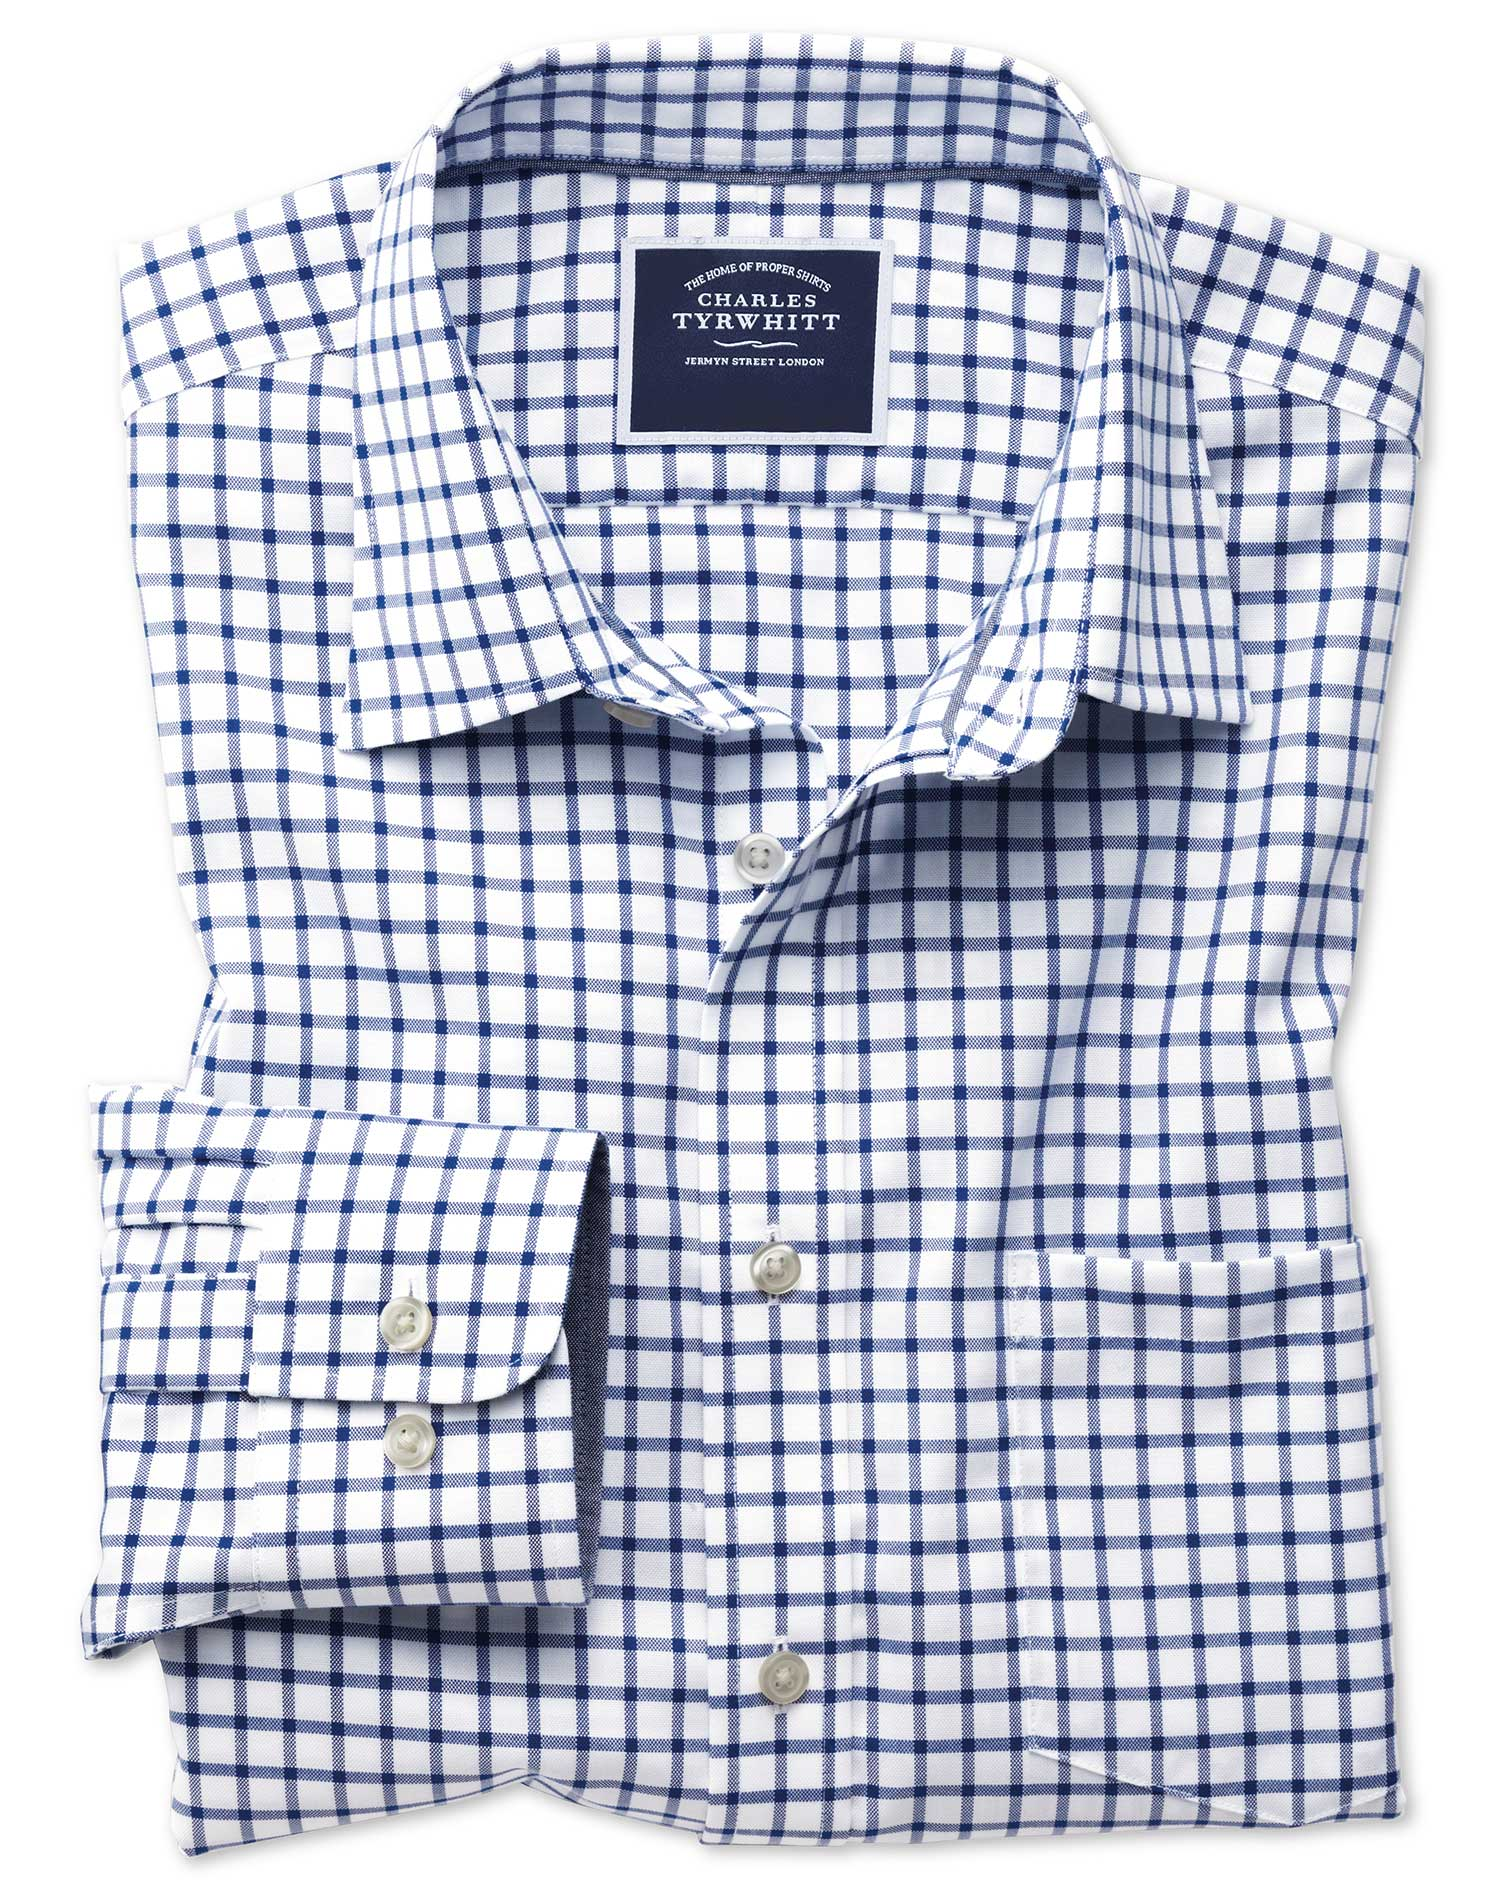 Slim Fit Non-Iron Oxford White and Navy Grid Check Cotton Shirt Single Cuff Size XXL by Charles Tyrw